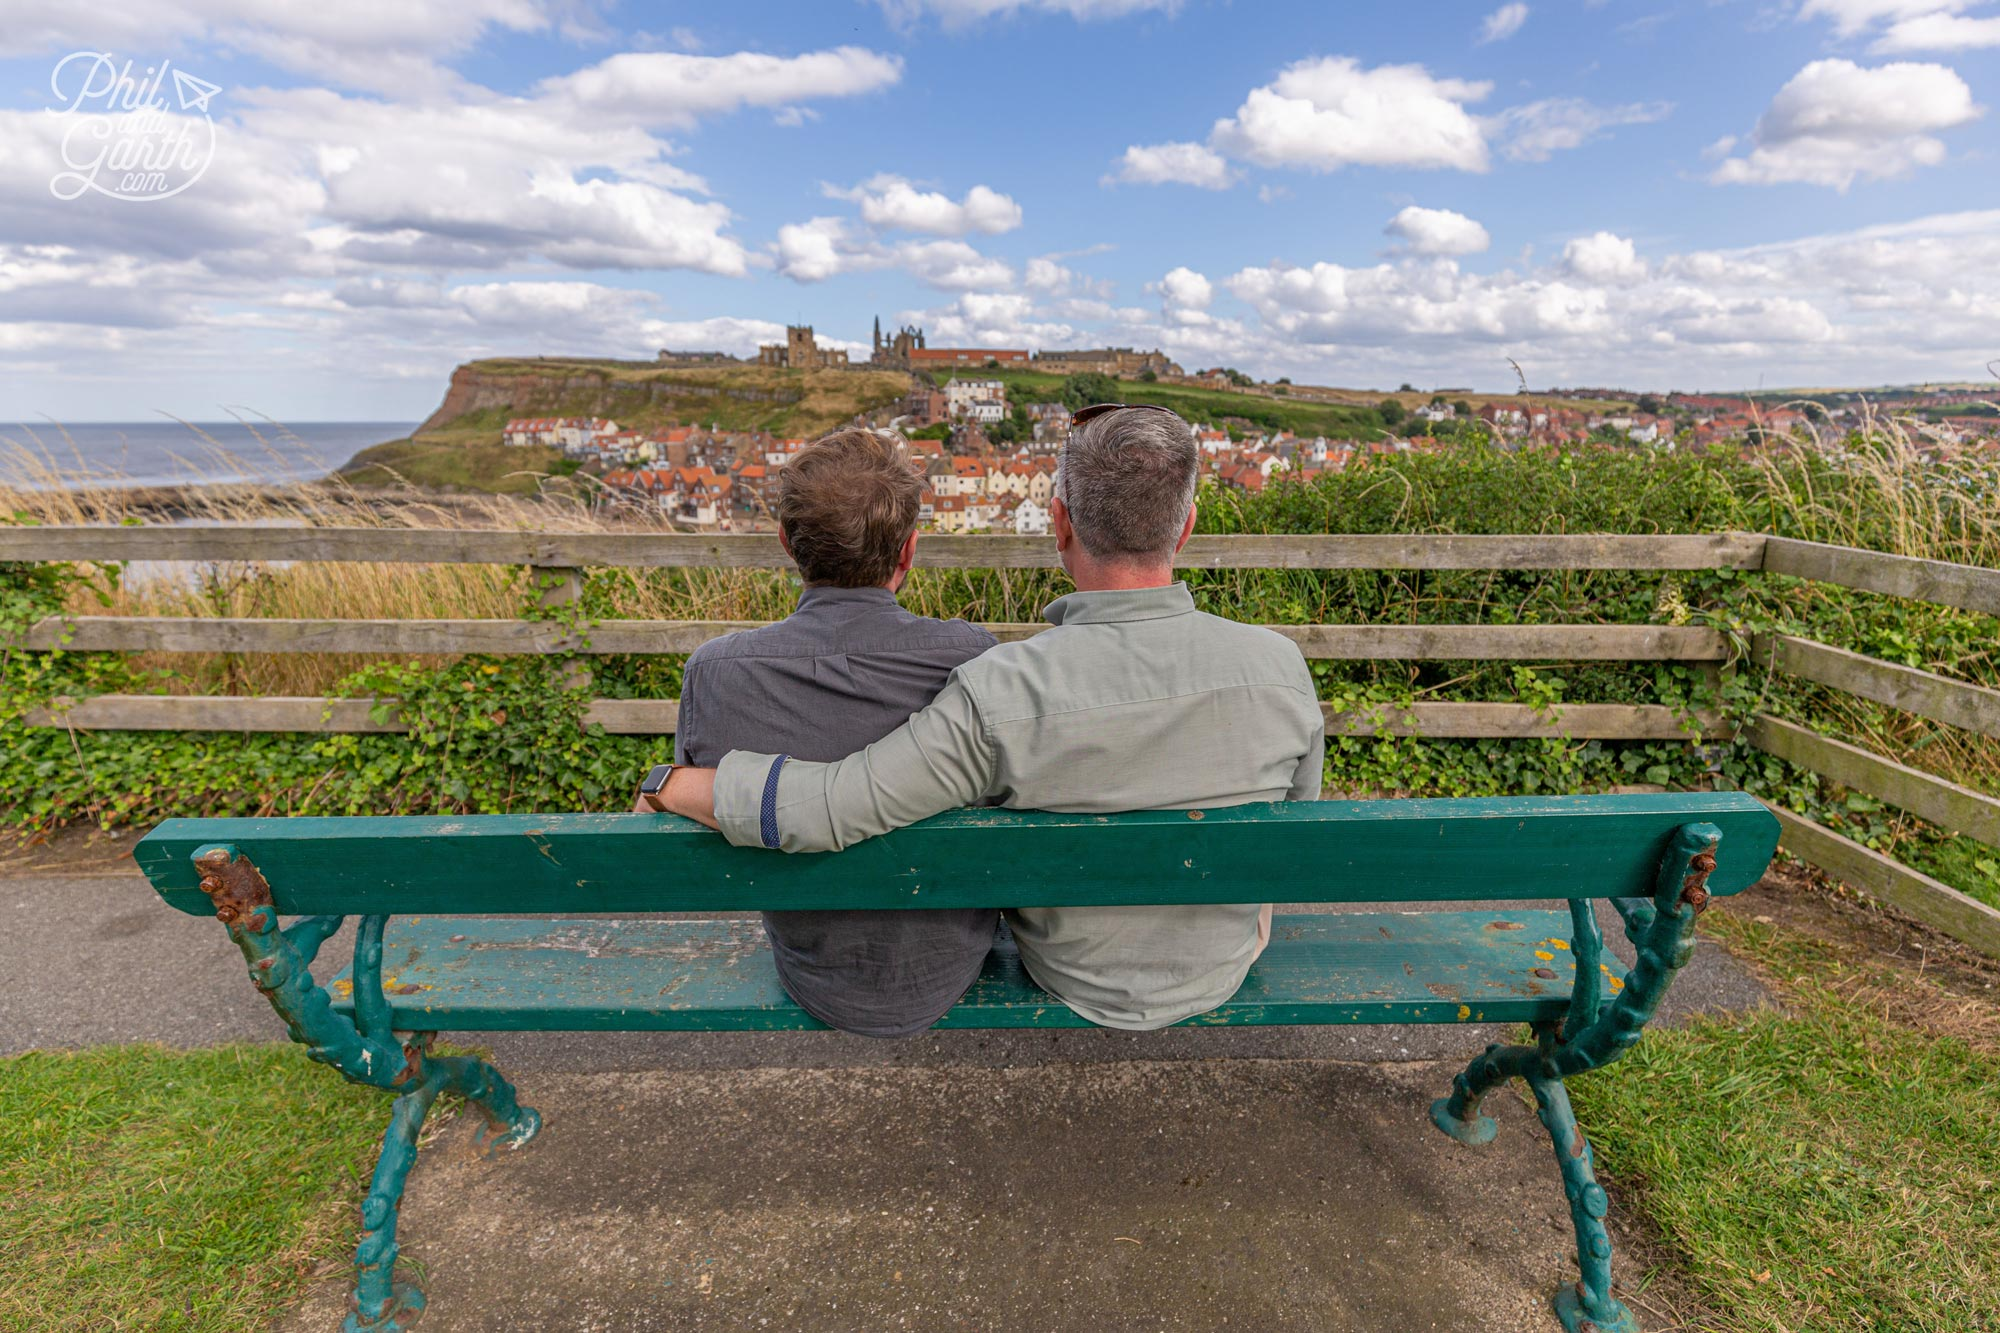 Phil and Garth sat on the Bram Stoker bench looking out to the view of Whitby Abbey that inspired him